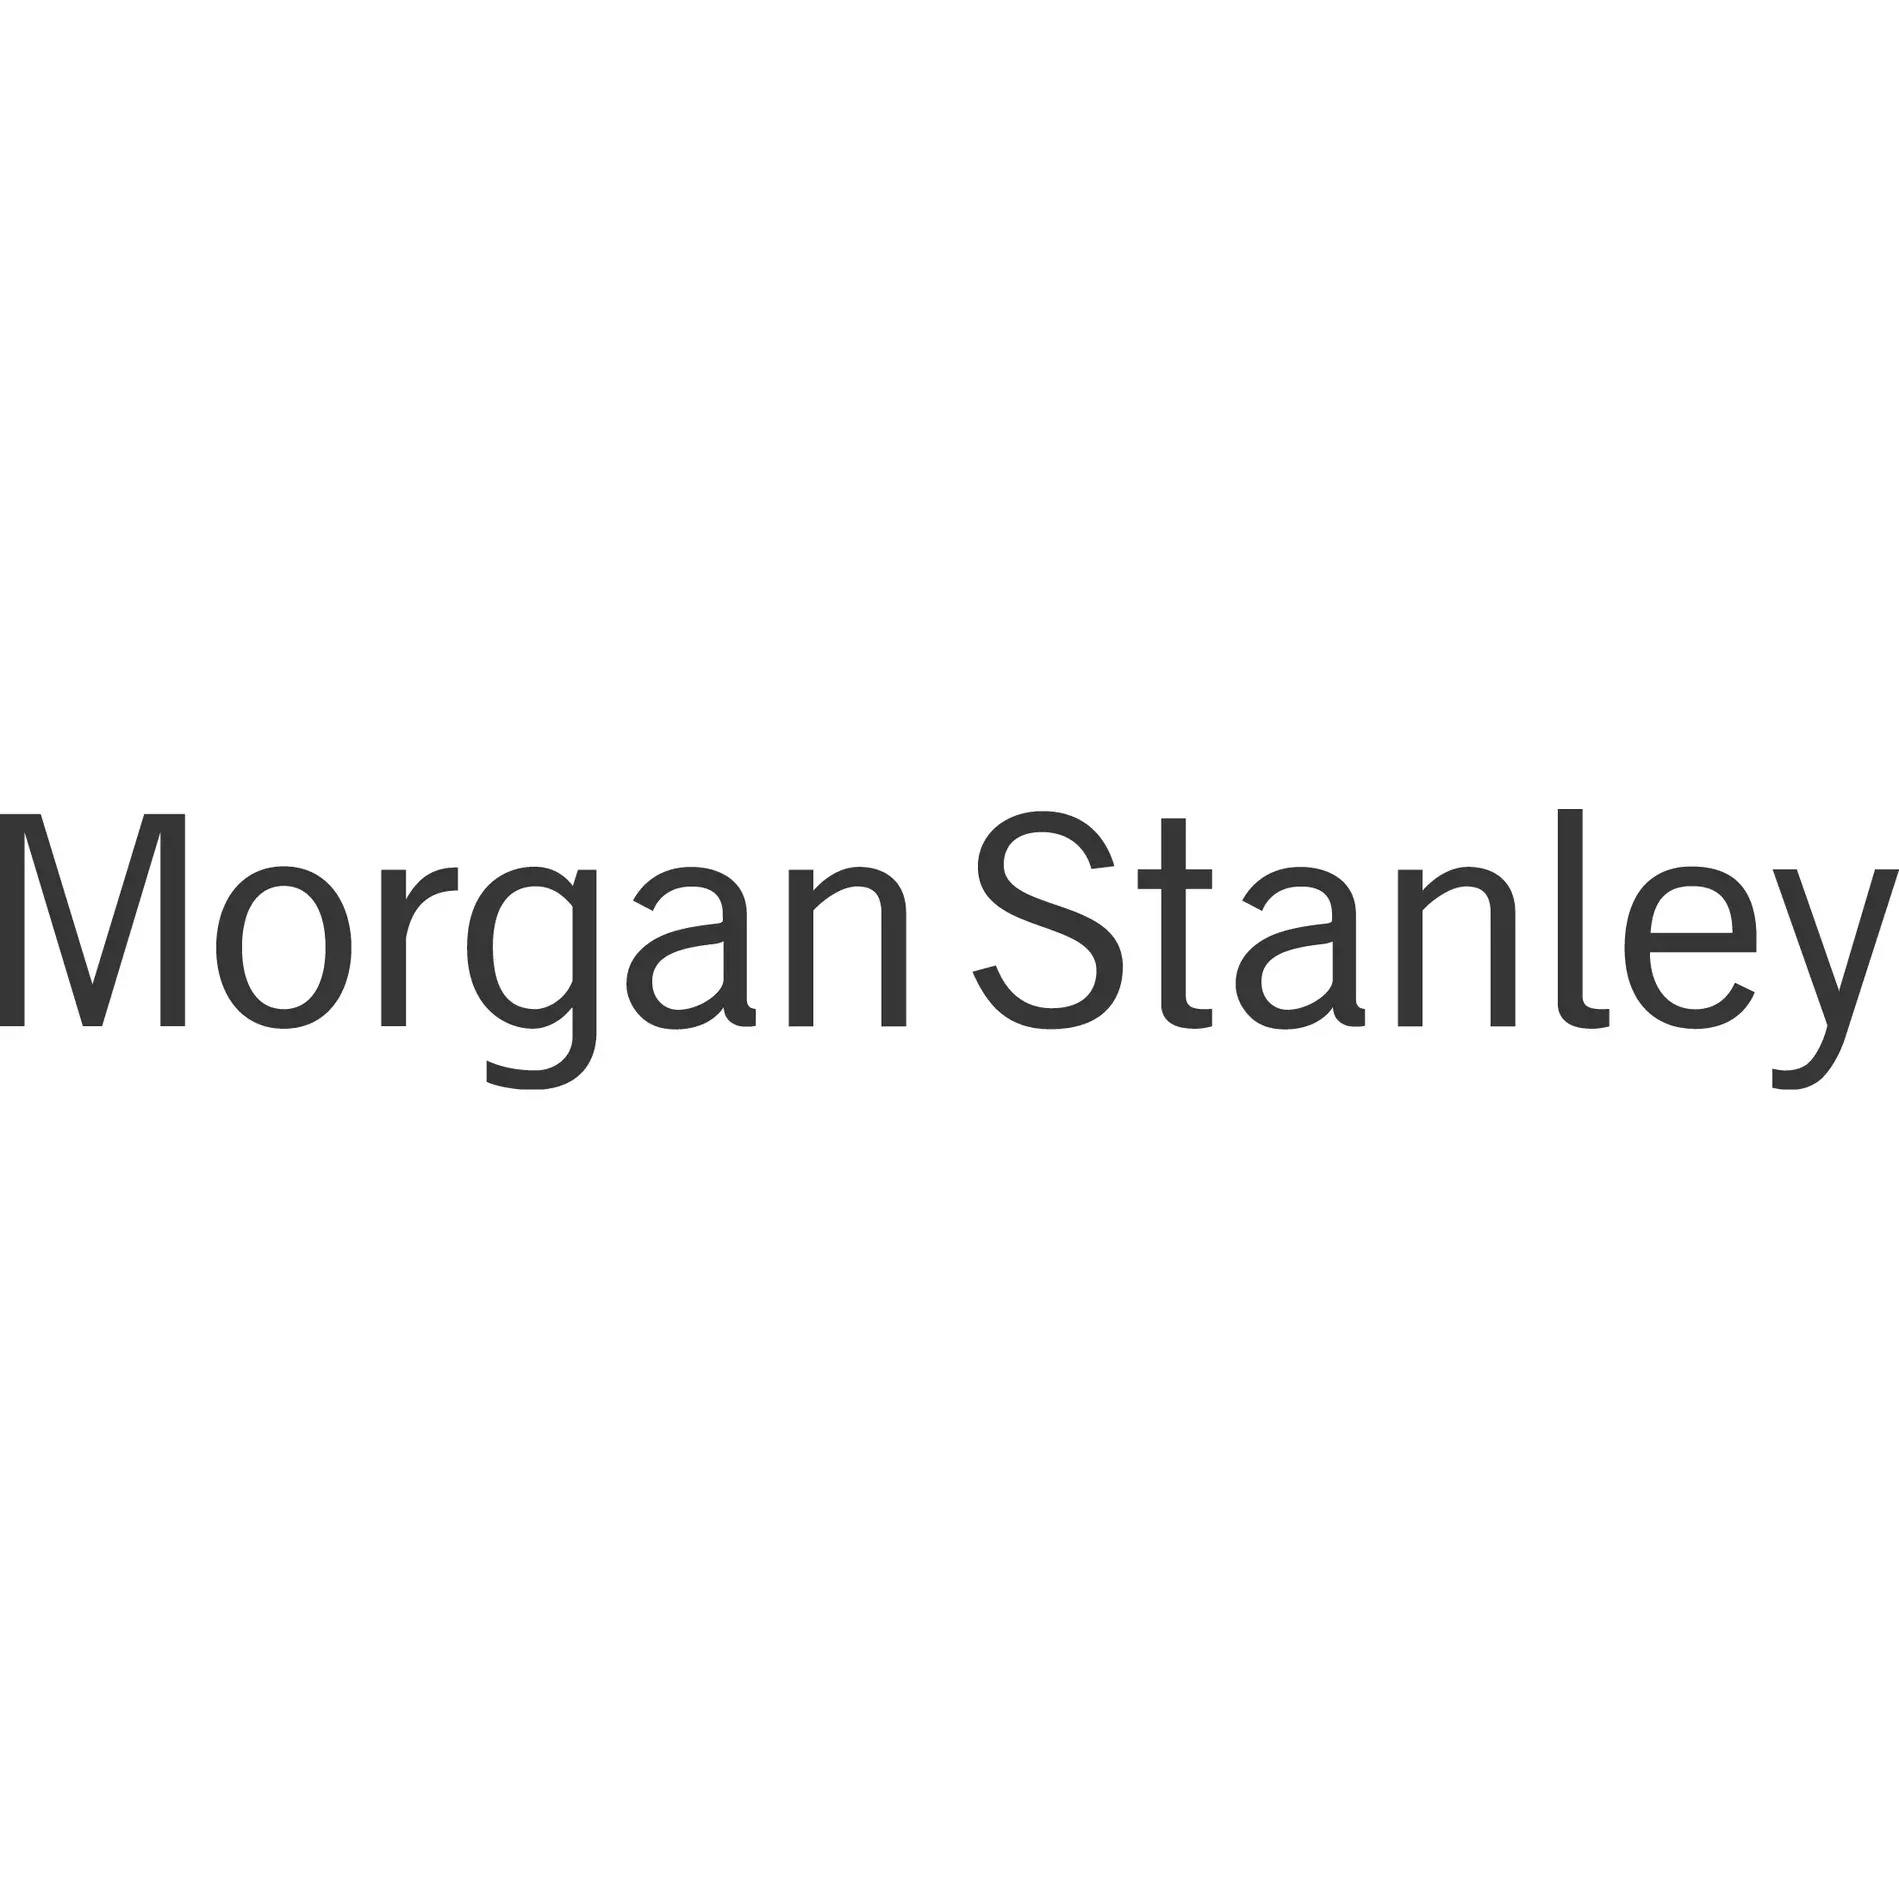 Robert A Mondillo - Morgan Stanley | Financial Advisor in Columbus,Ohio